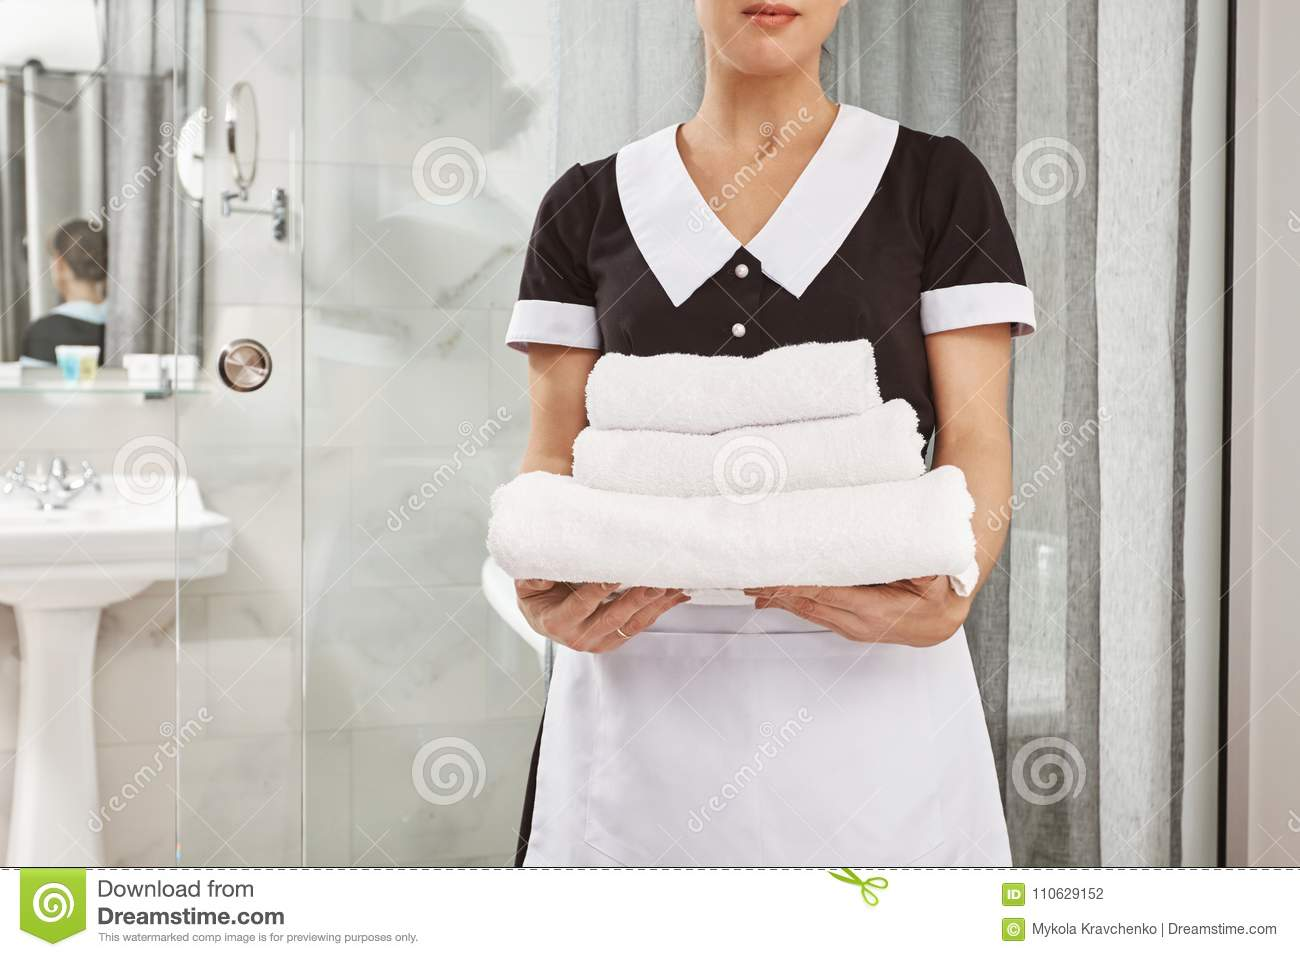 Everything is fresh and clean. Cropped portrait of housecleaner in maid uniform holding pack of white towels. Employee